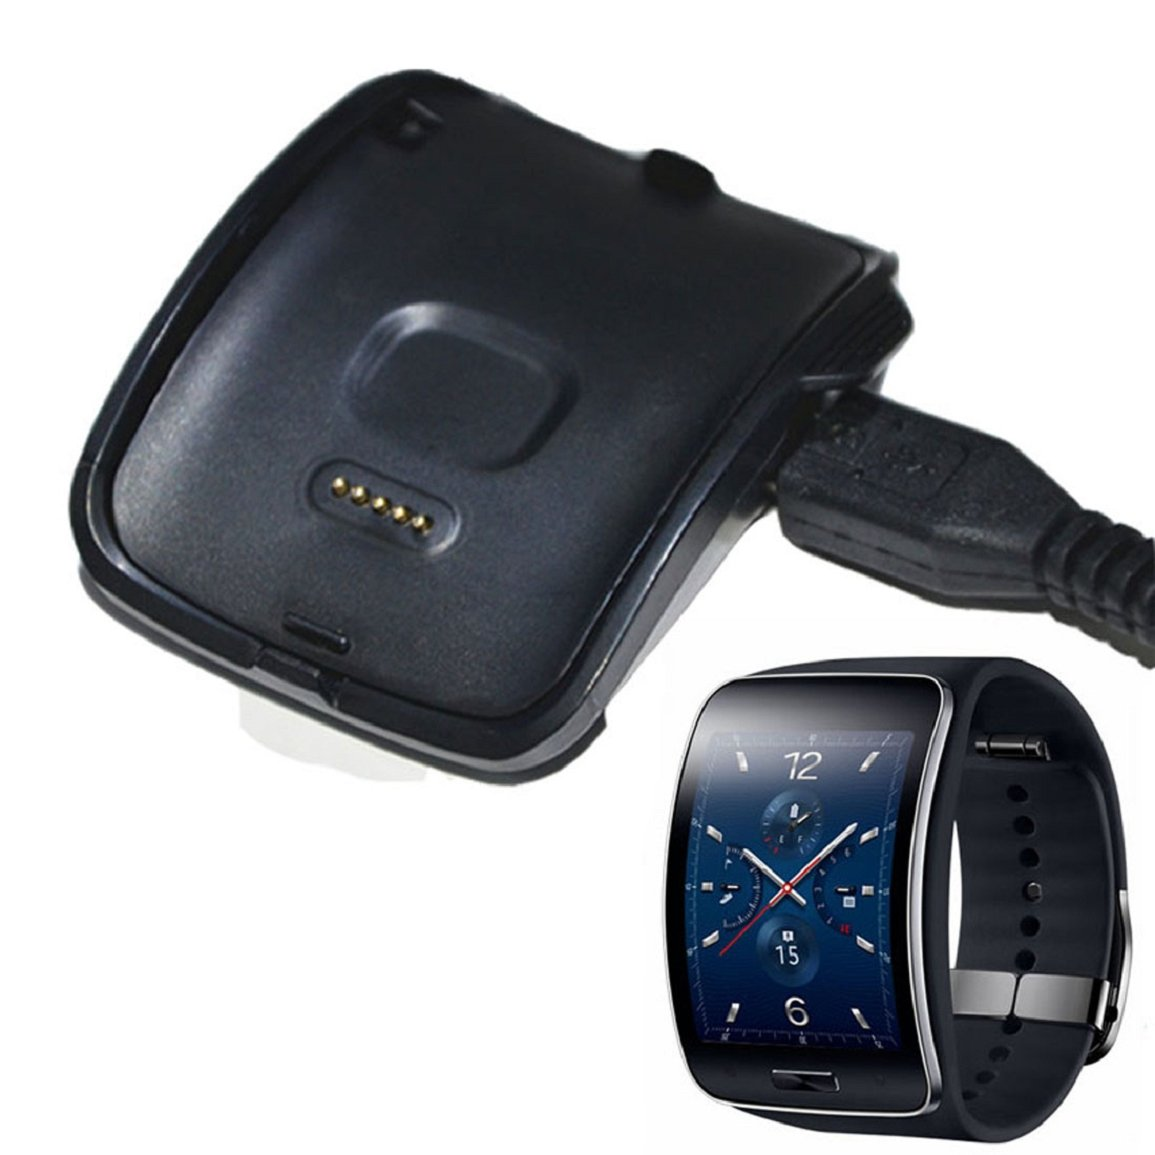 Gear Watch Charger Charger For Samsung Gear s